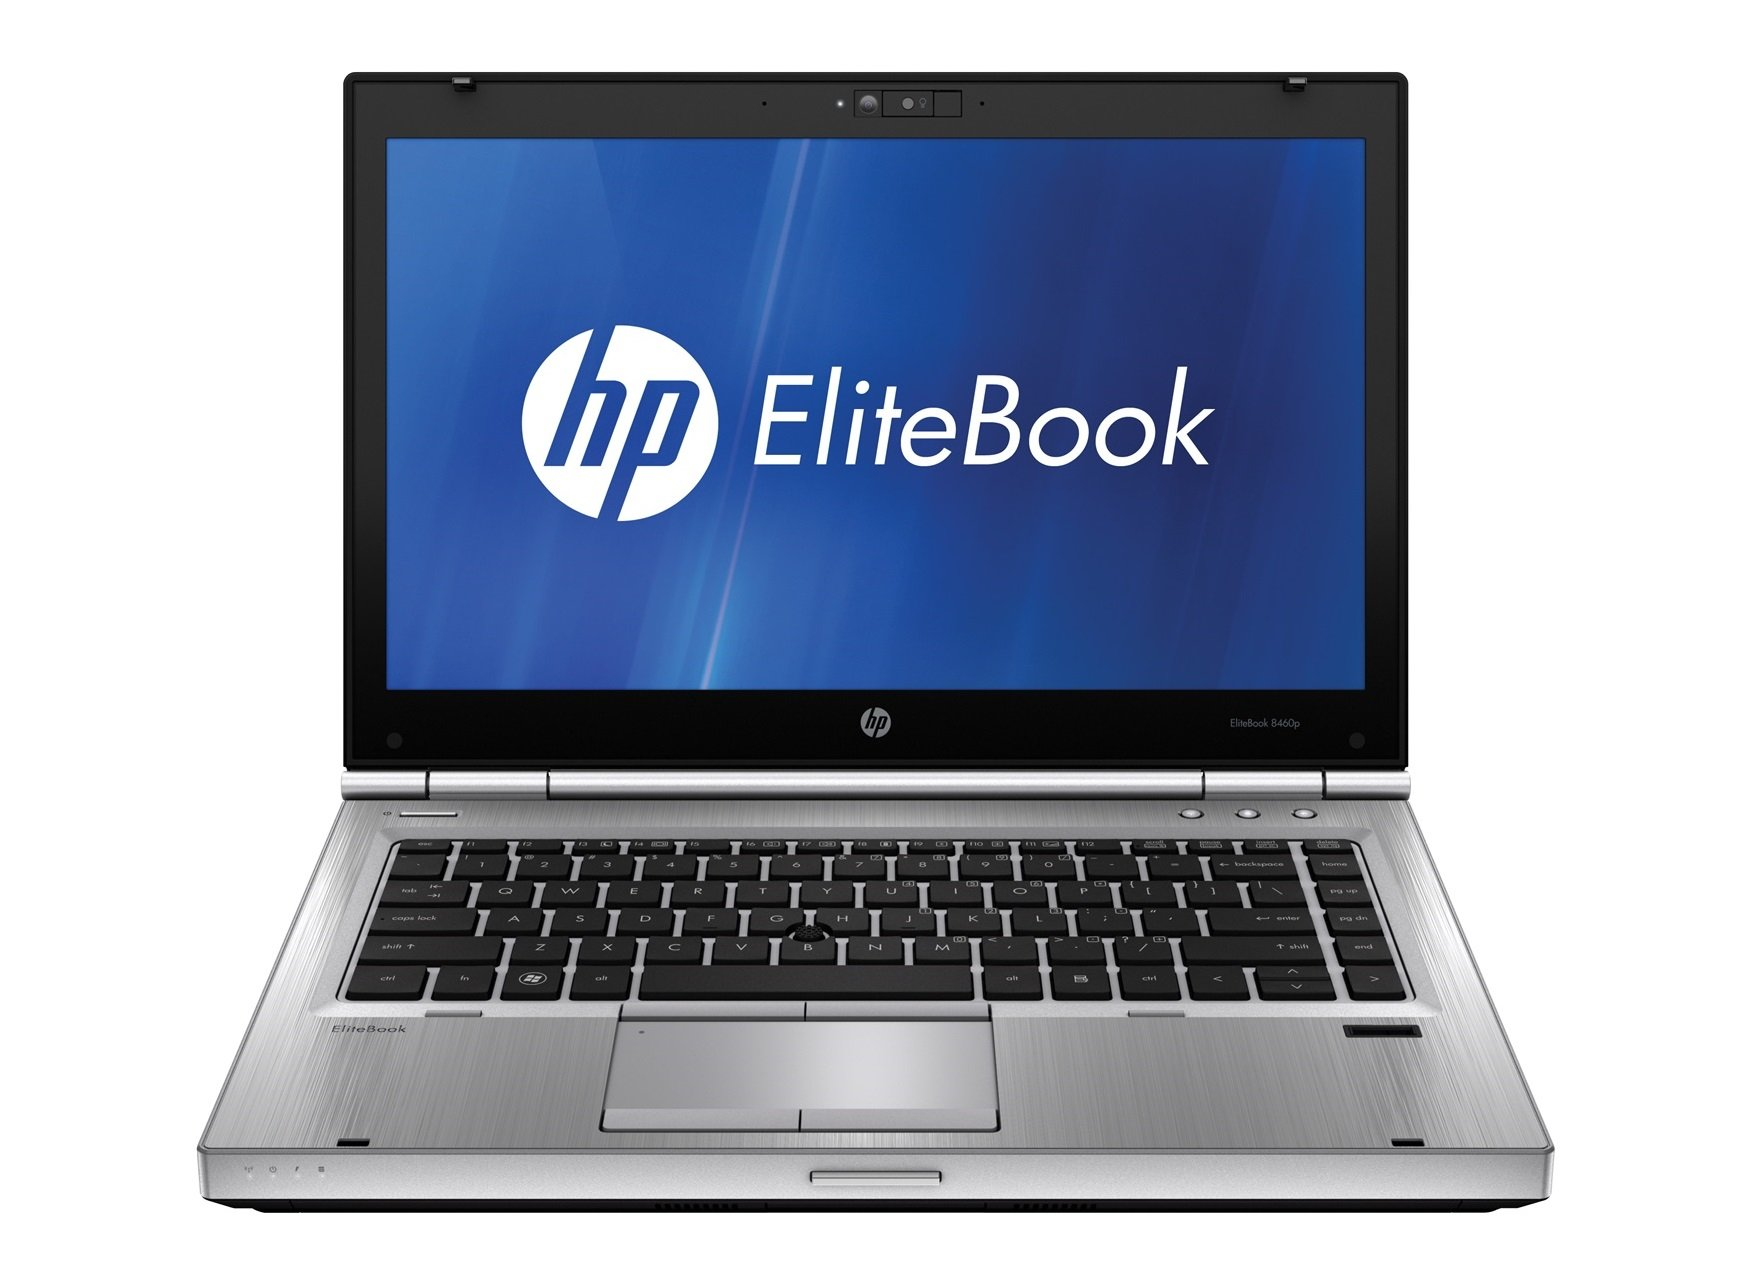 HP EliteBook 8460P 14-inch Notebook PC - Intel Core i5-2520M 2.5GHz 8GB 250GB Windows 10 Professional (Certified Refurbished)